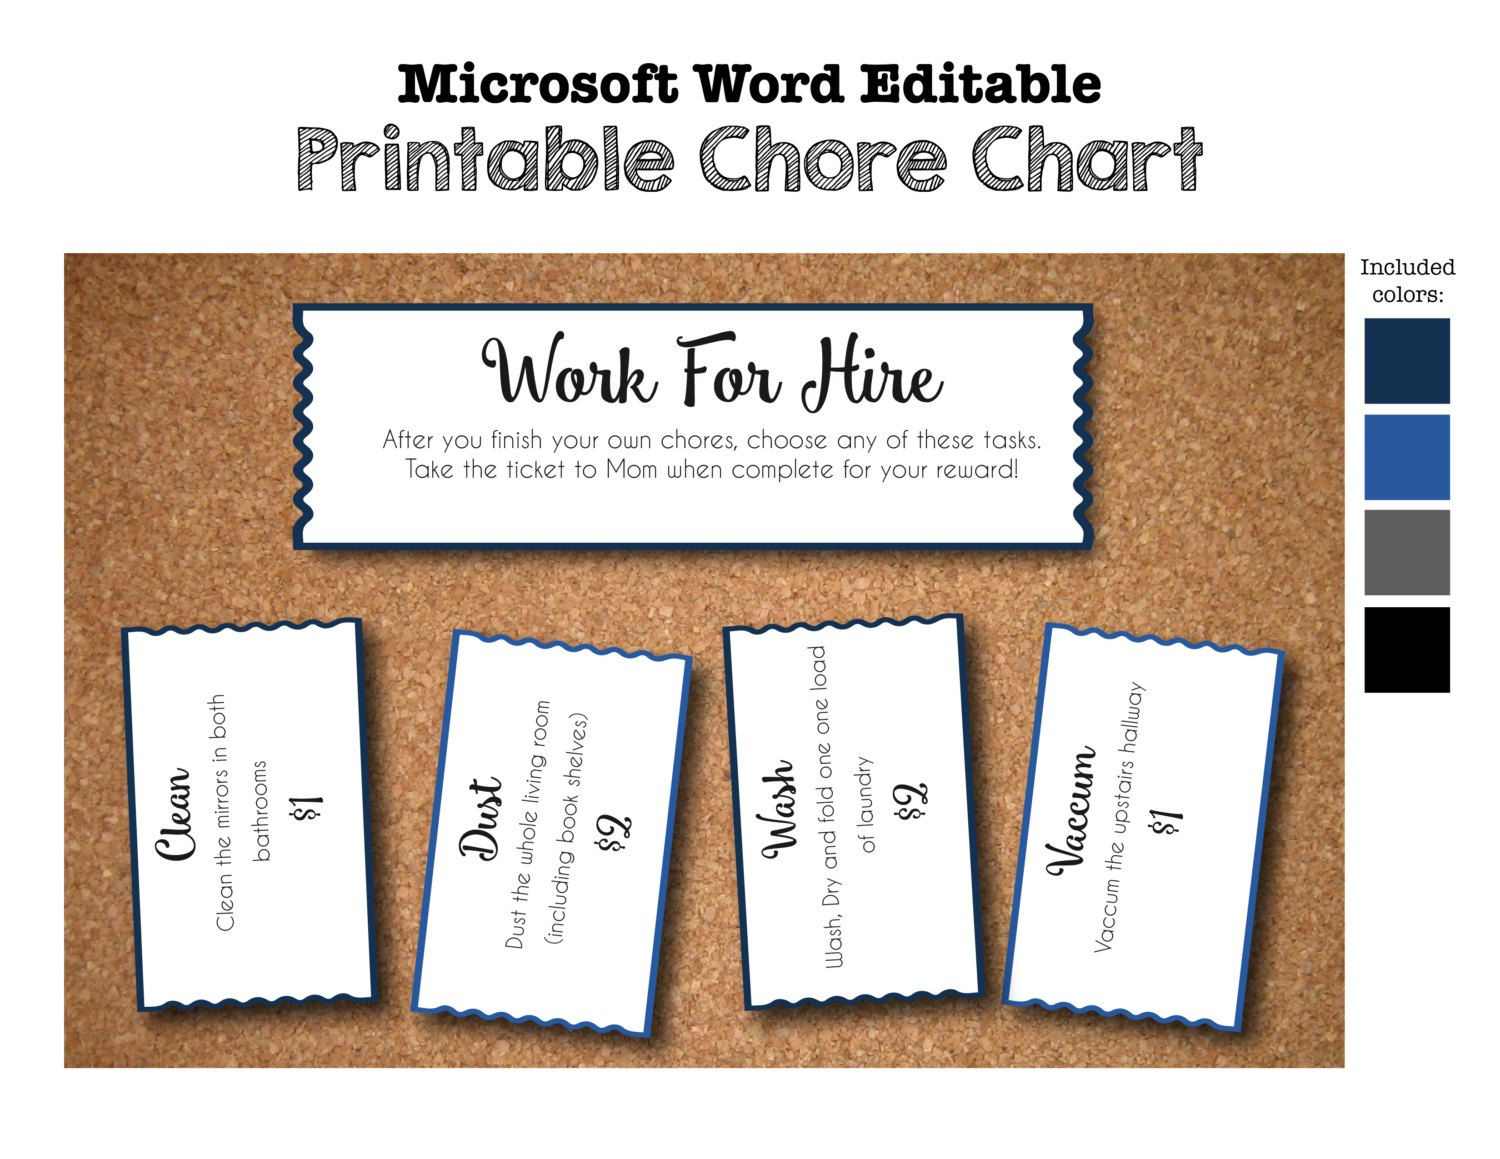 printable chore chart work for hire tickets coupons voucher printable chore chart work for hire tickets coupons voucher invitations diy microsoft word